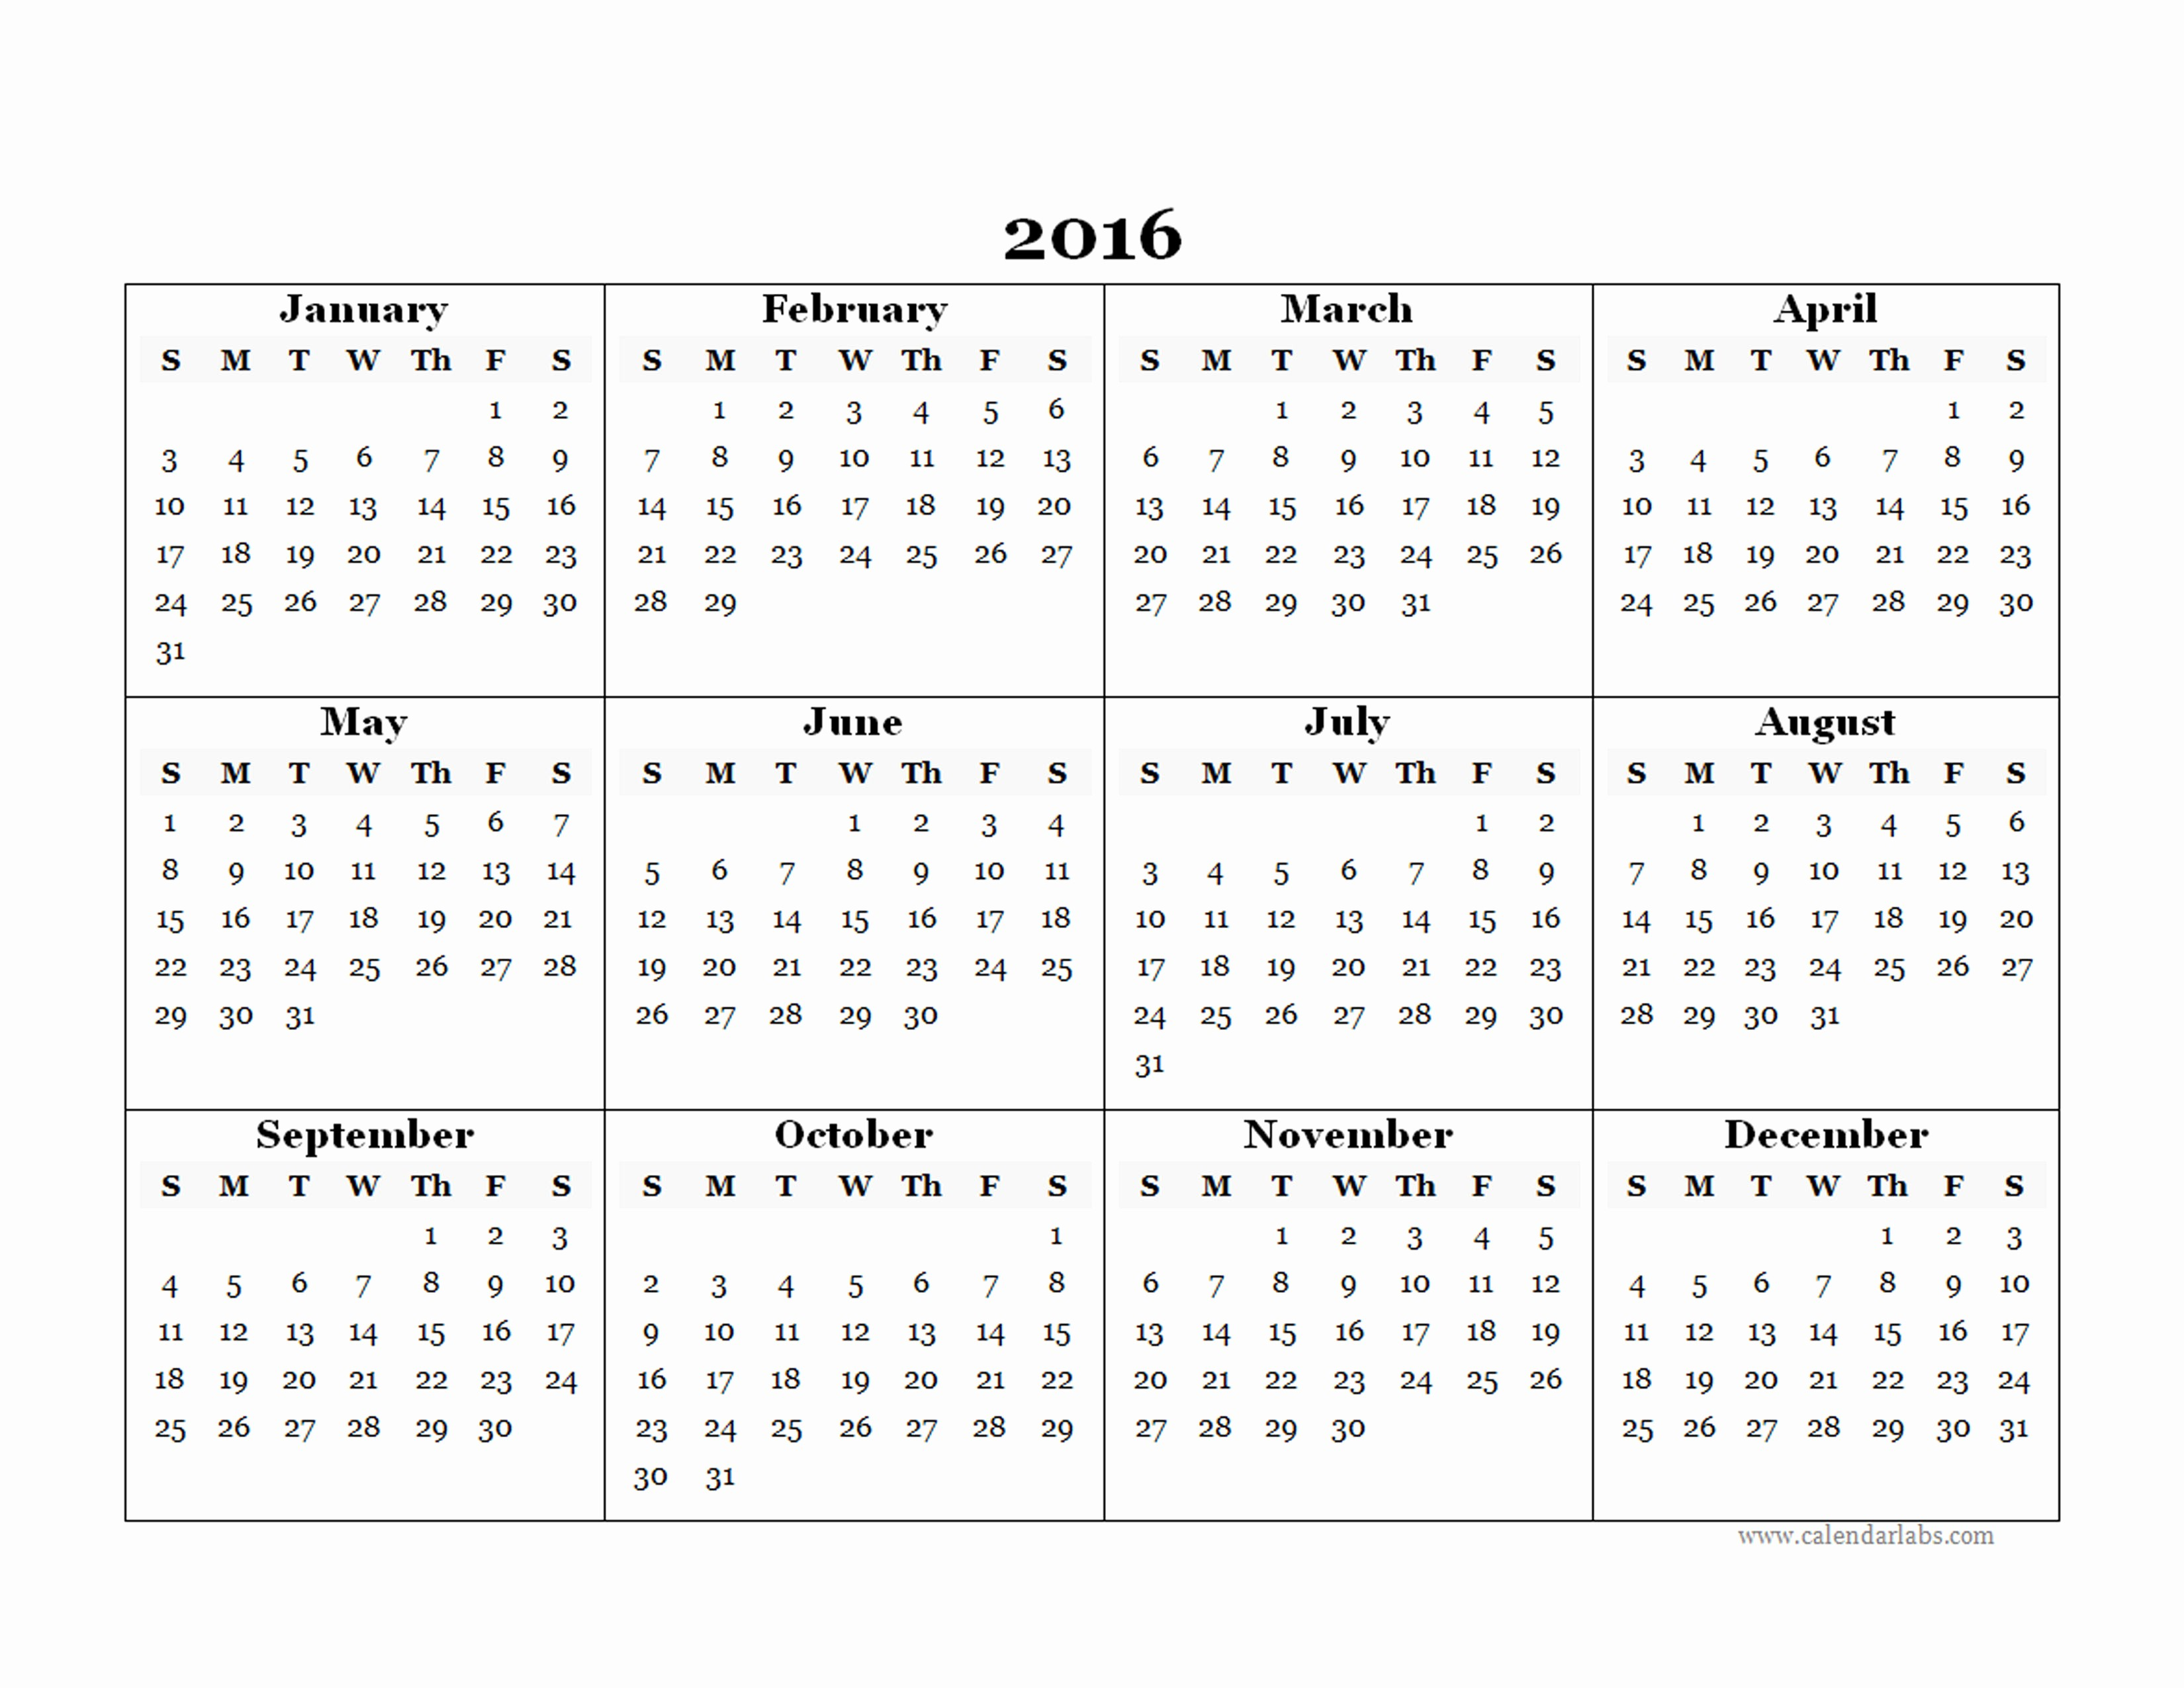 Free Printable Calendars 2016 Templates Best Of 2016 Yearly Calendar Template 07 Free Printable Templates